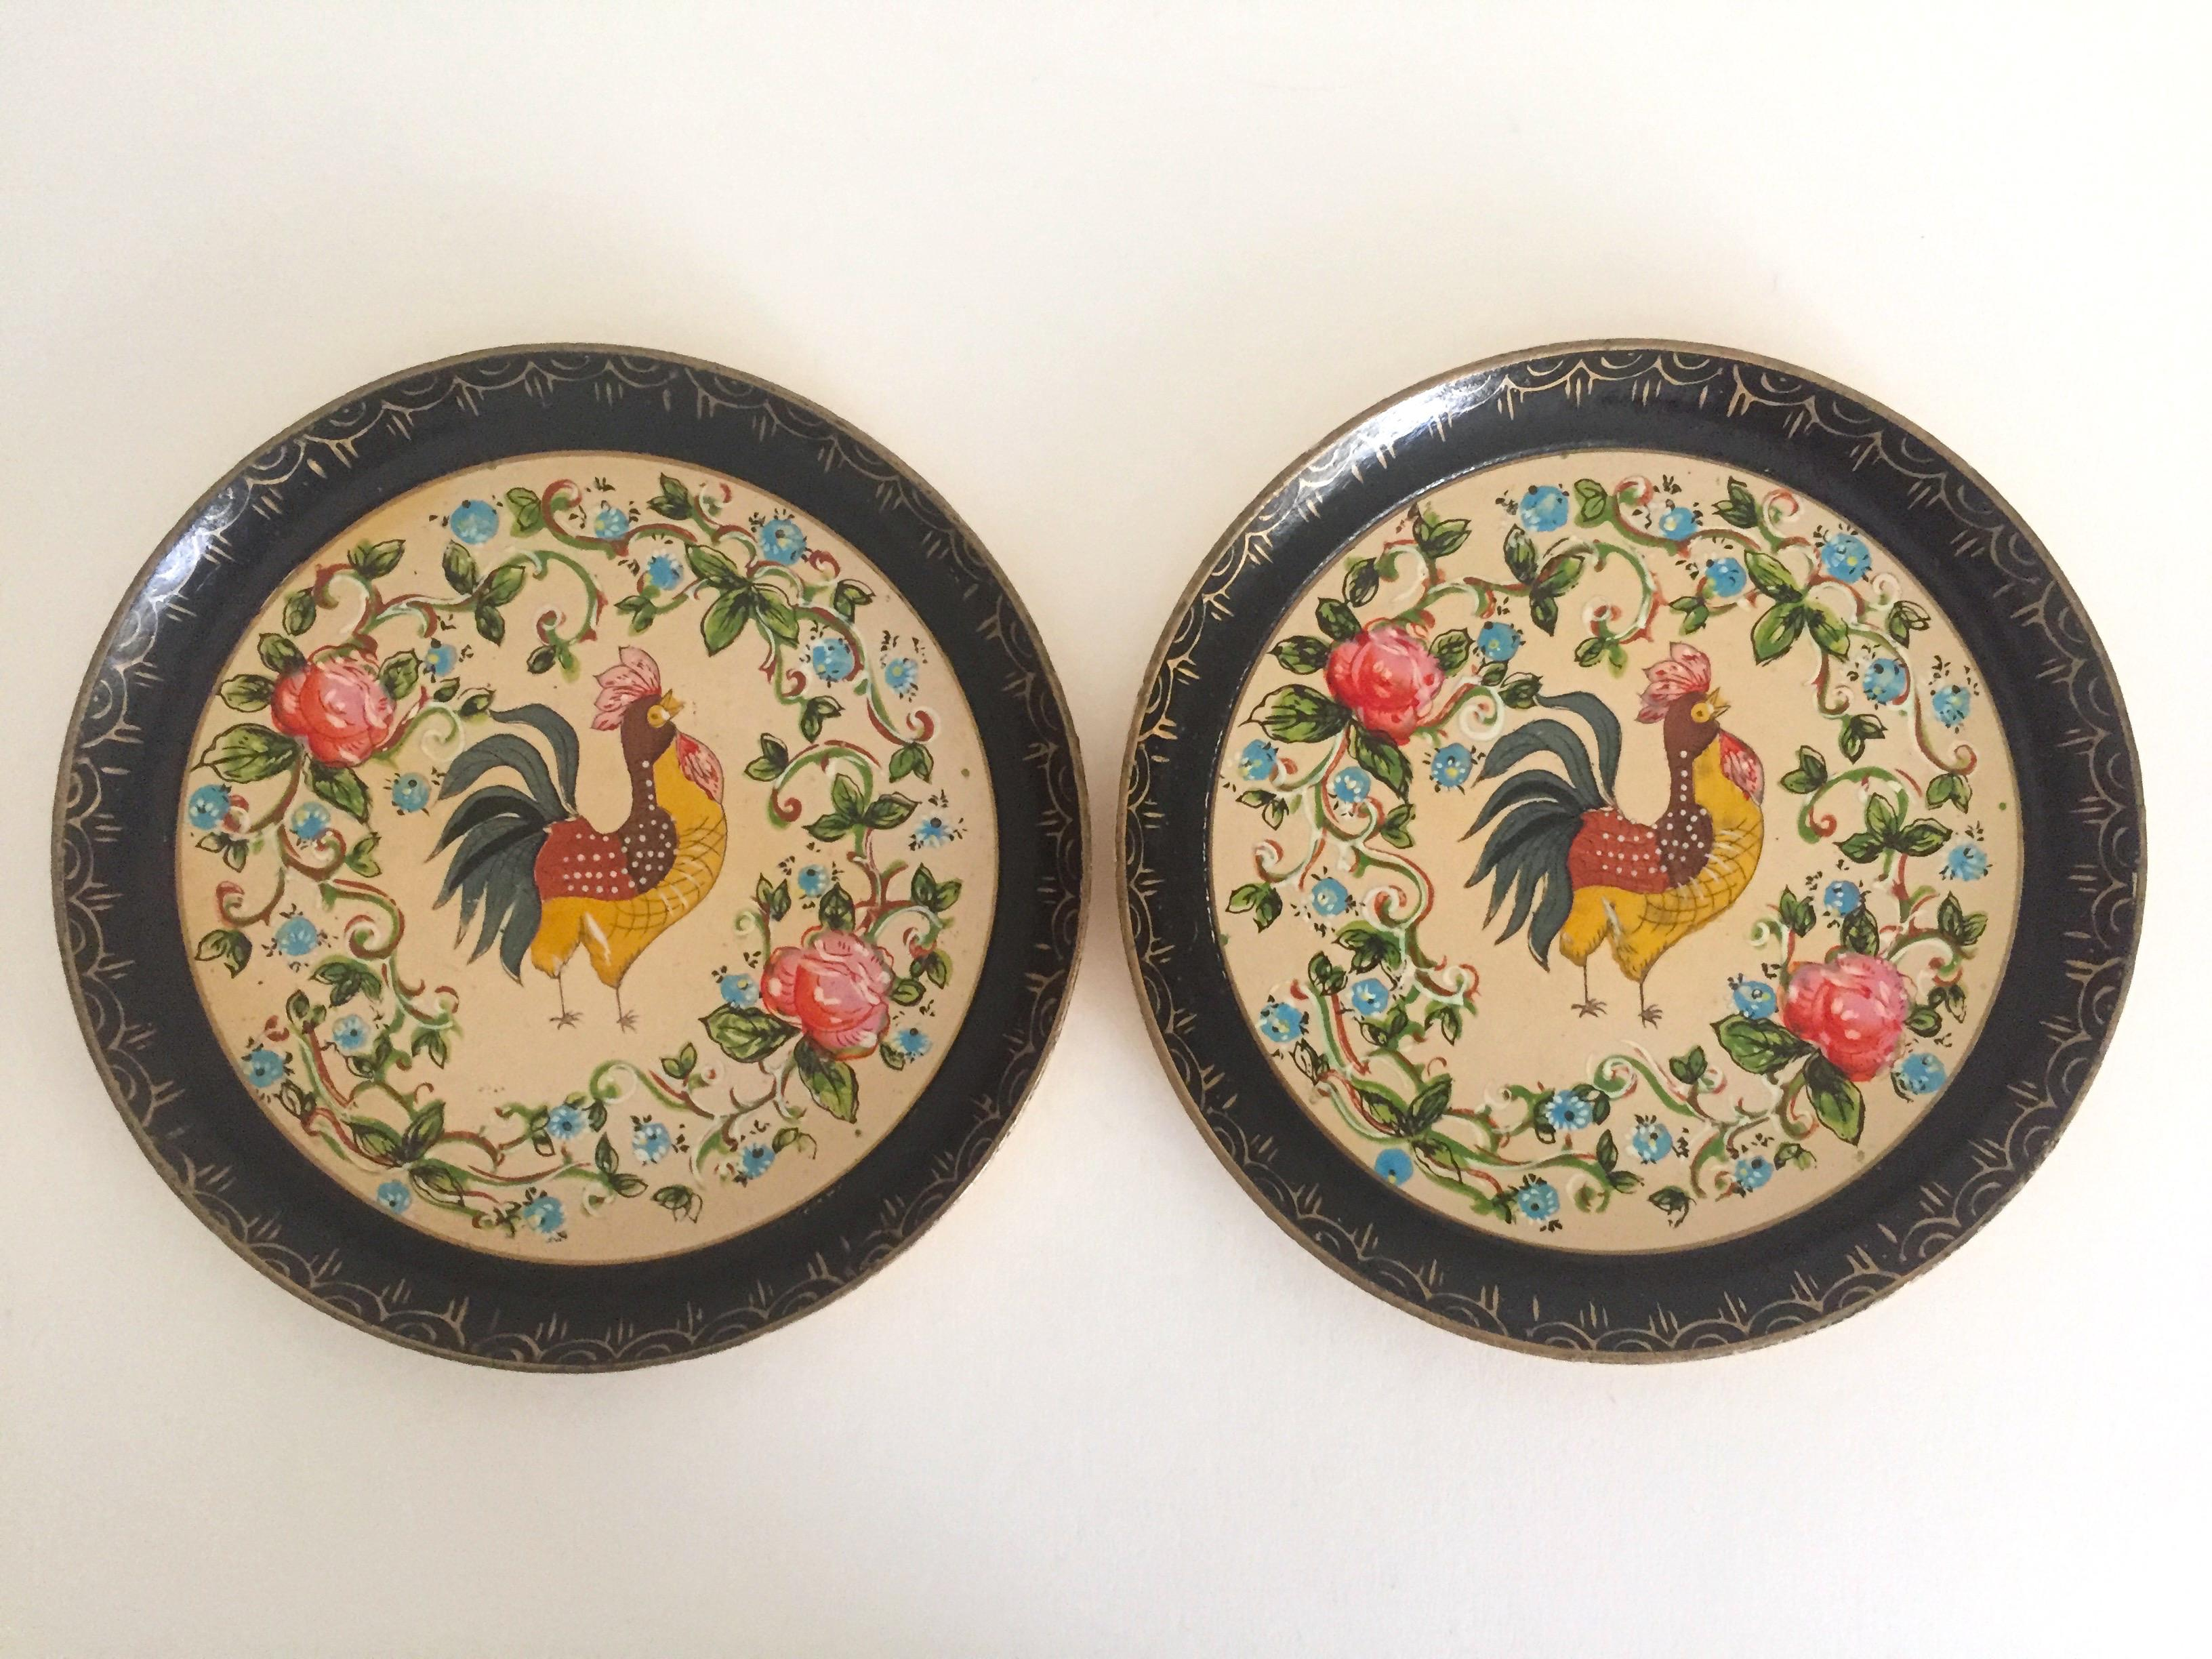 Vintage 1940u0027s Japanese Hand Painted Rooster Decorative Plates - A Pair - Image 2 of 11  sc 1 st  Chairish & Vintage 1940u0027s Japanese Hand Painted Rooster Decorative Plates - A ...